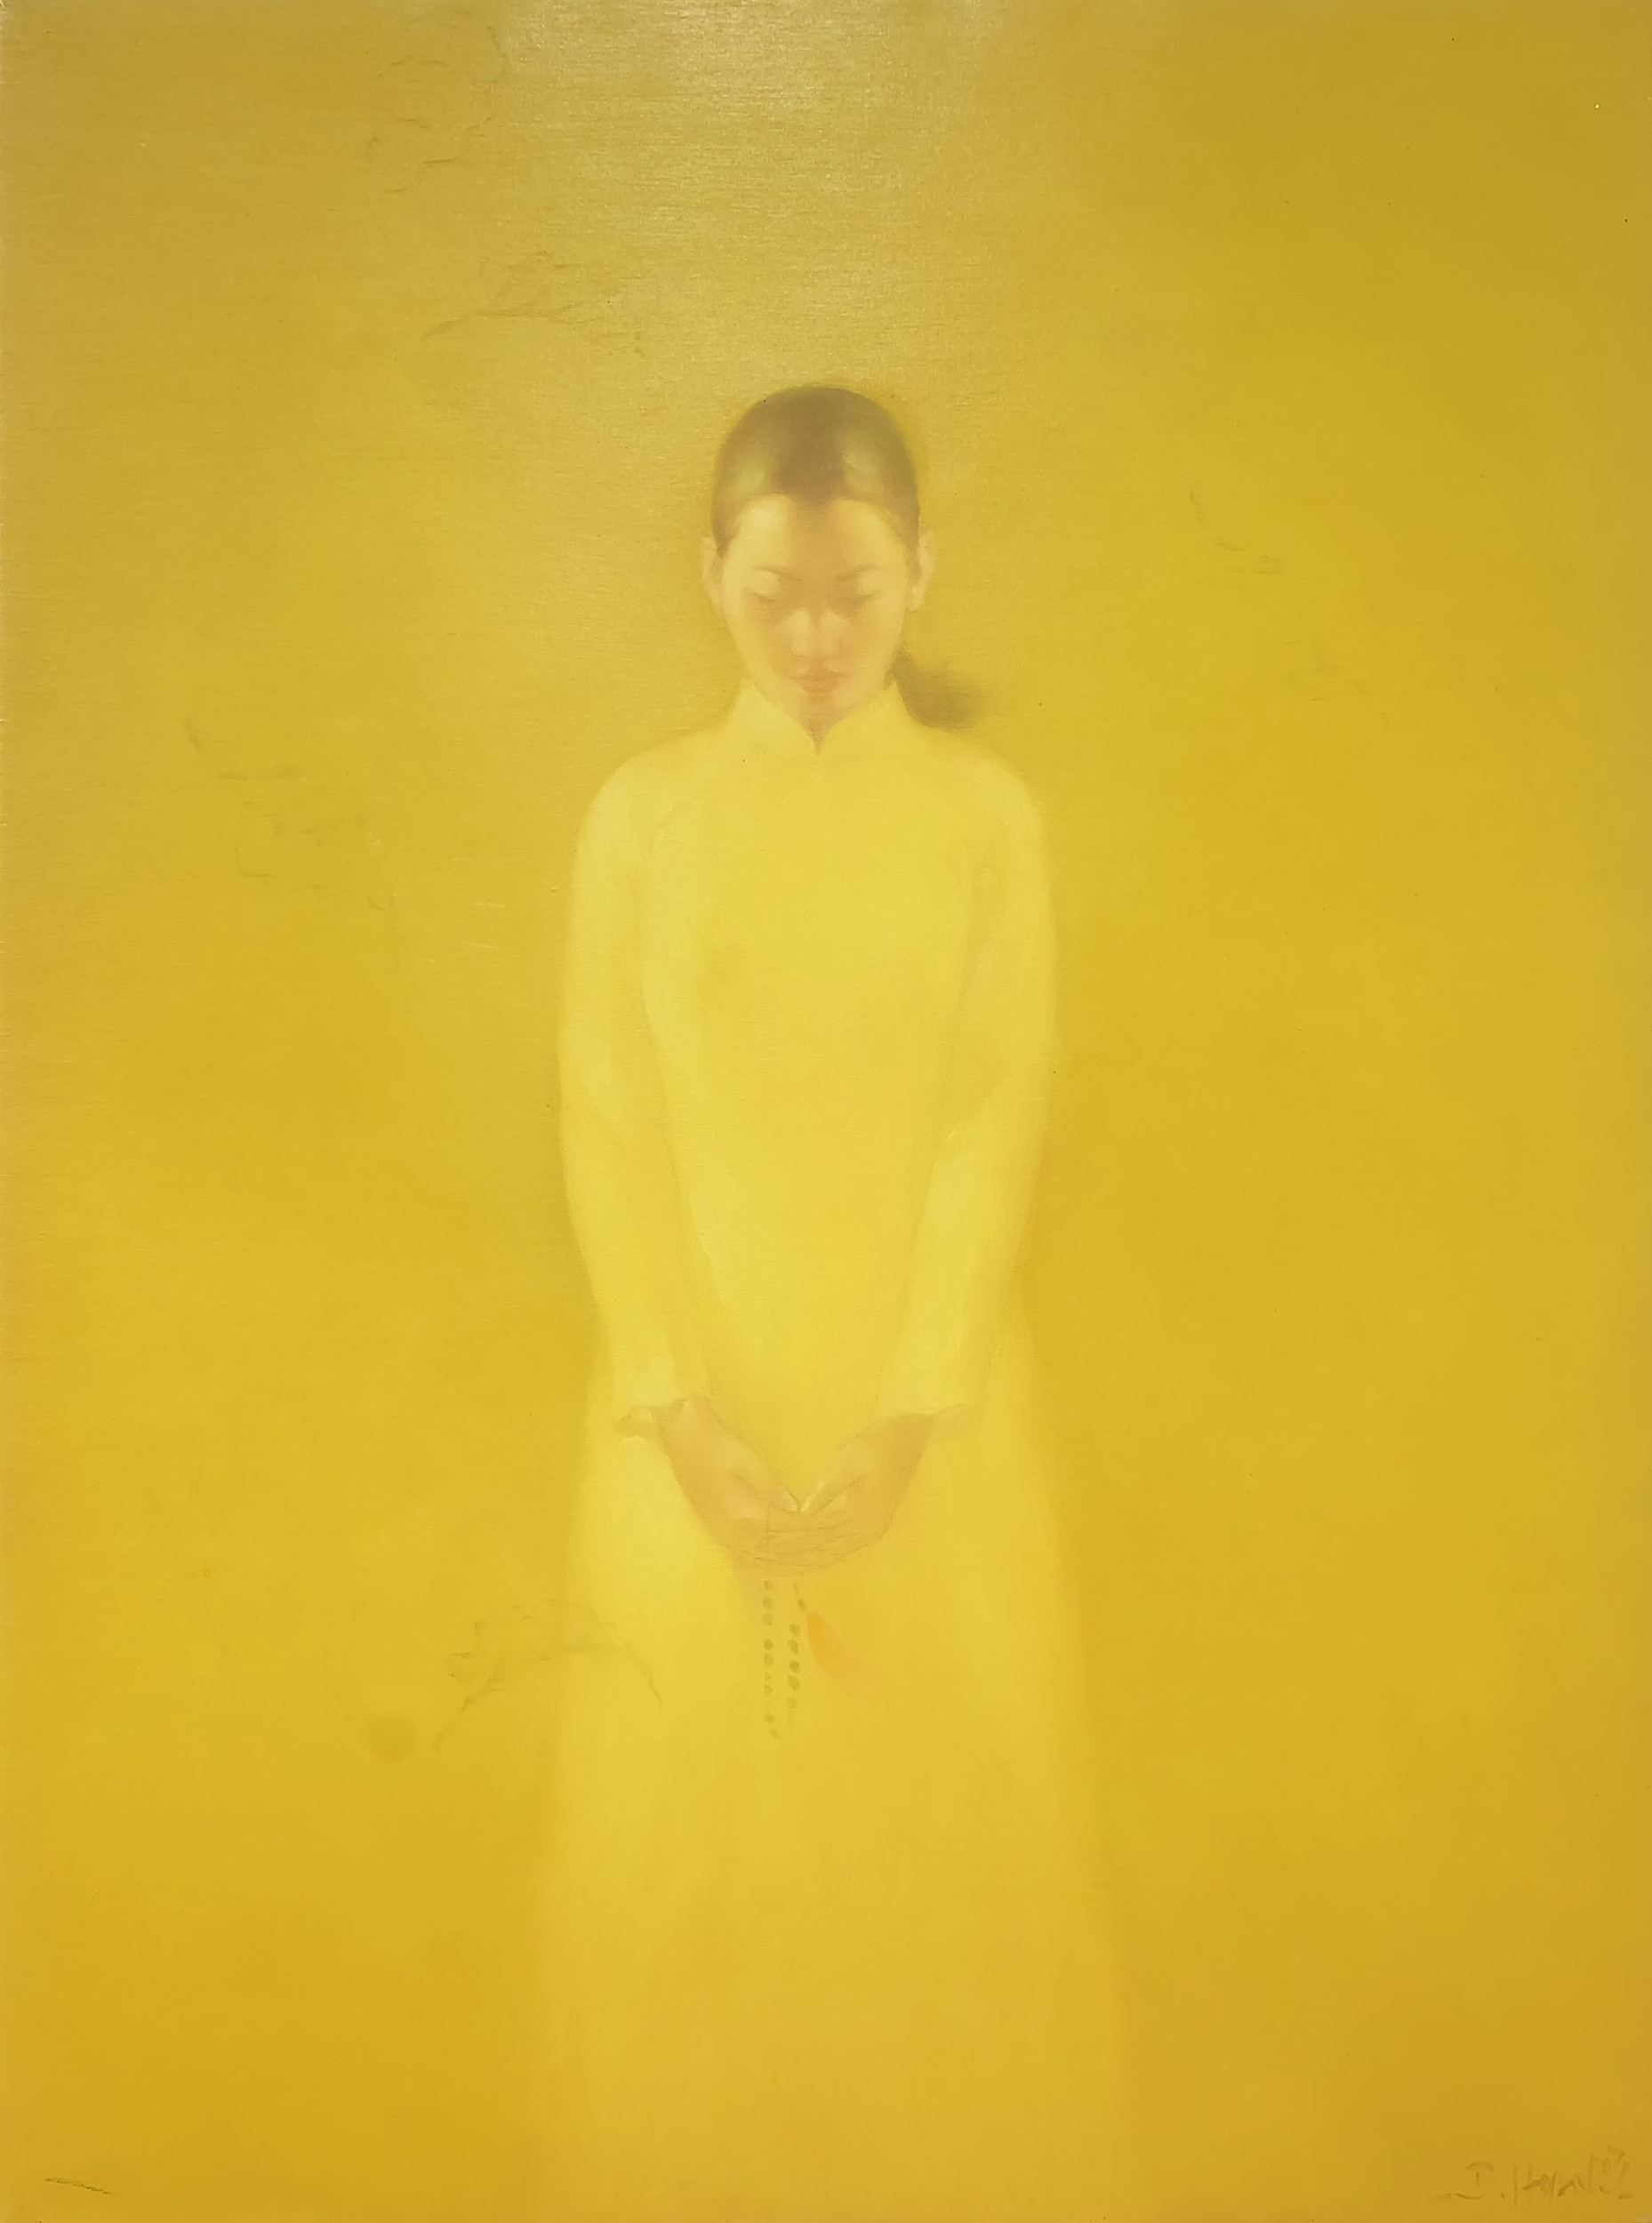 'Bui Van Hoan (1971-) School Girl Oil on Canvas'